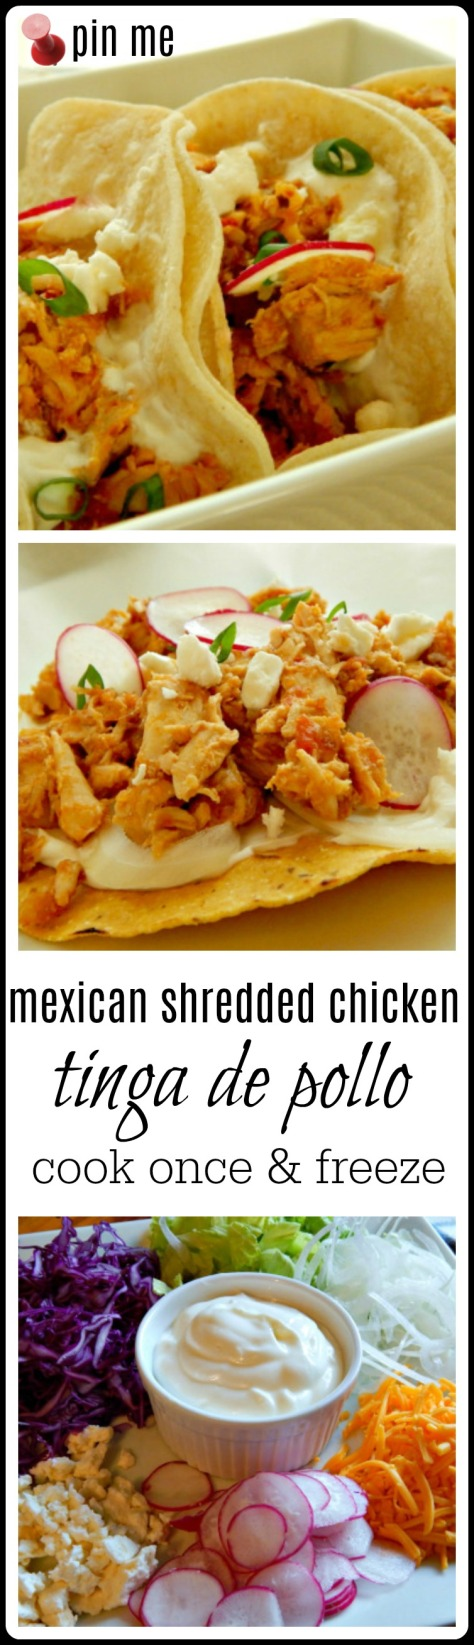 Chicken Tinga Mexican or Pueblan Shredded Chicken - makes enough to portion & freeze